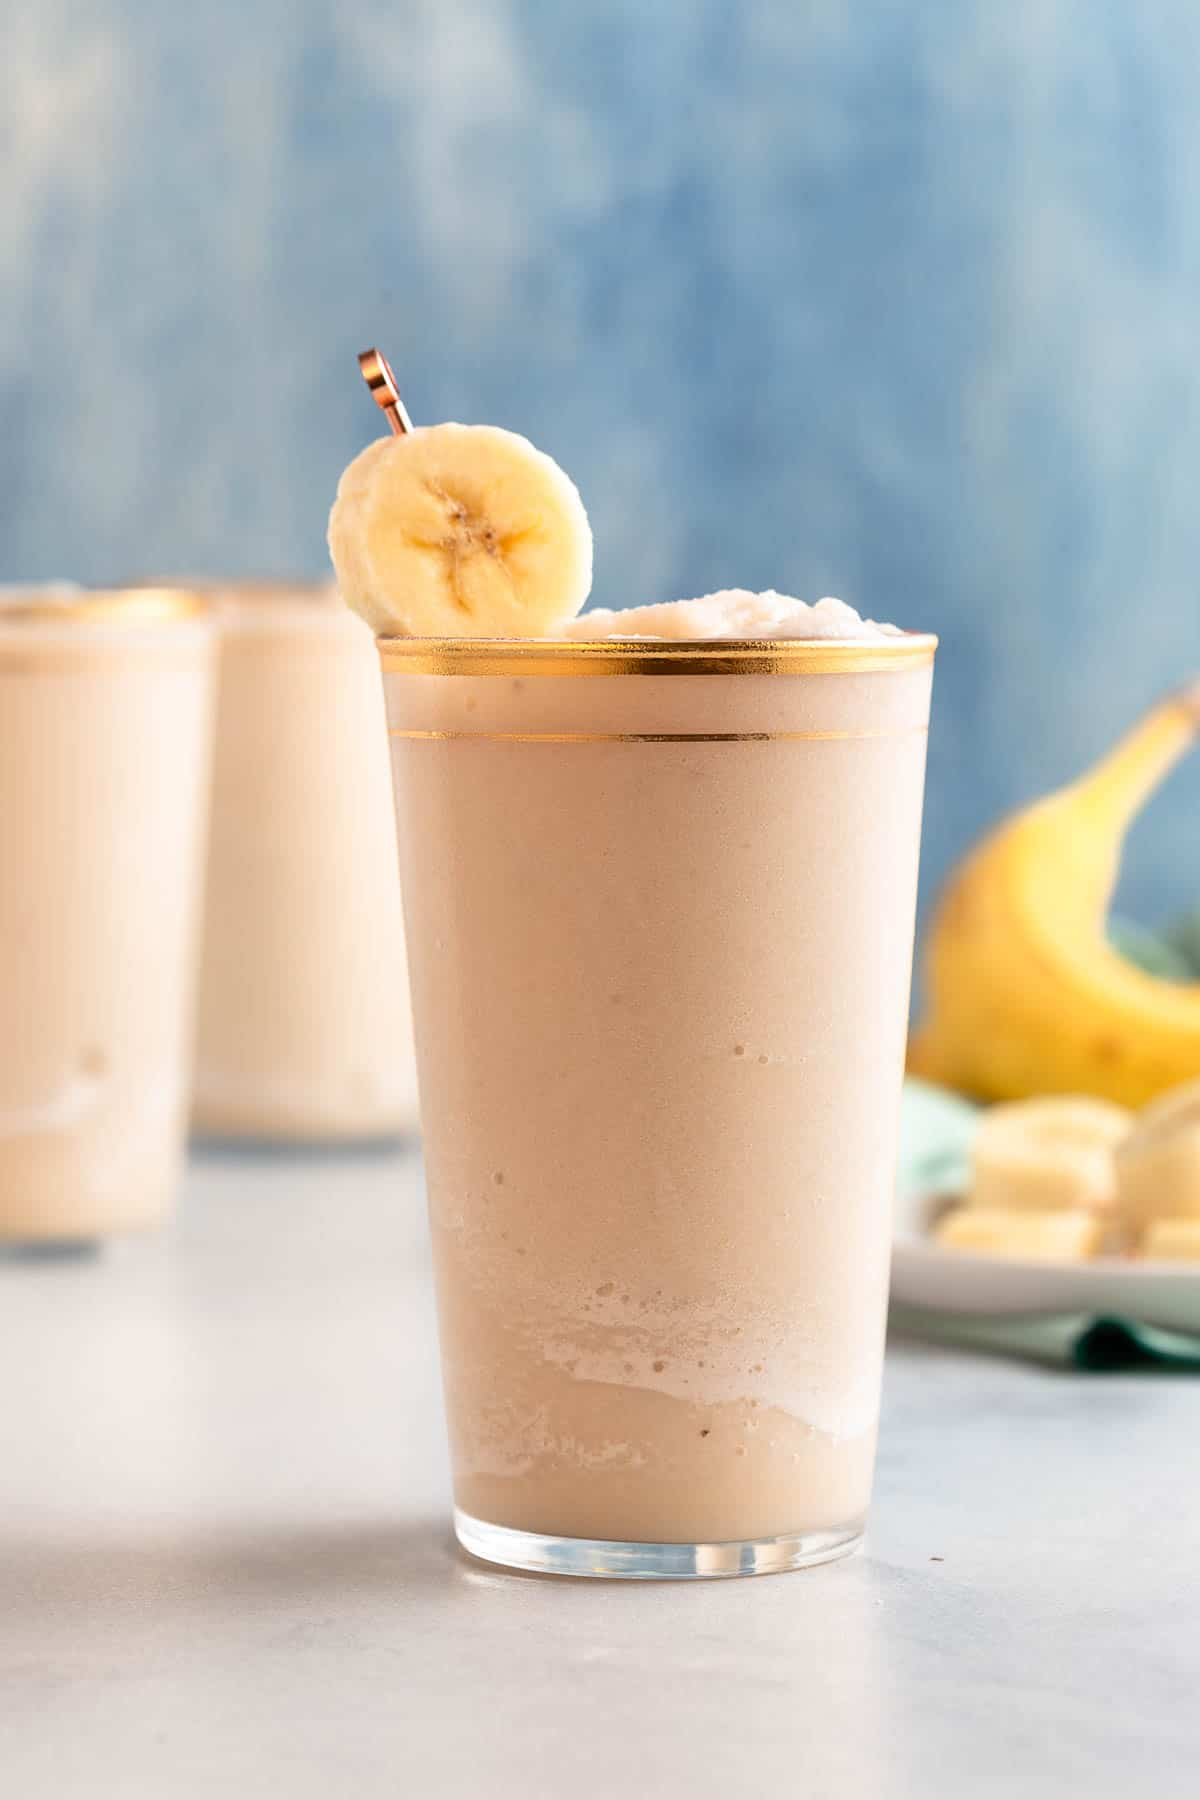 frozen blended cocktail in a gold rimmed glass with a banana garnish